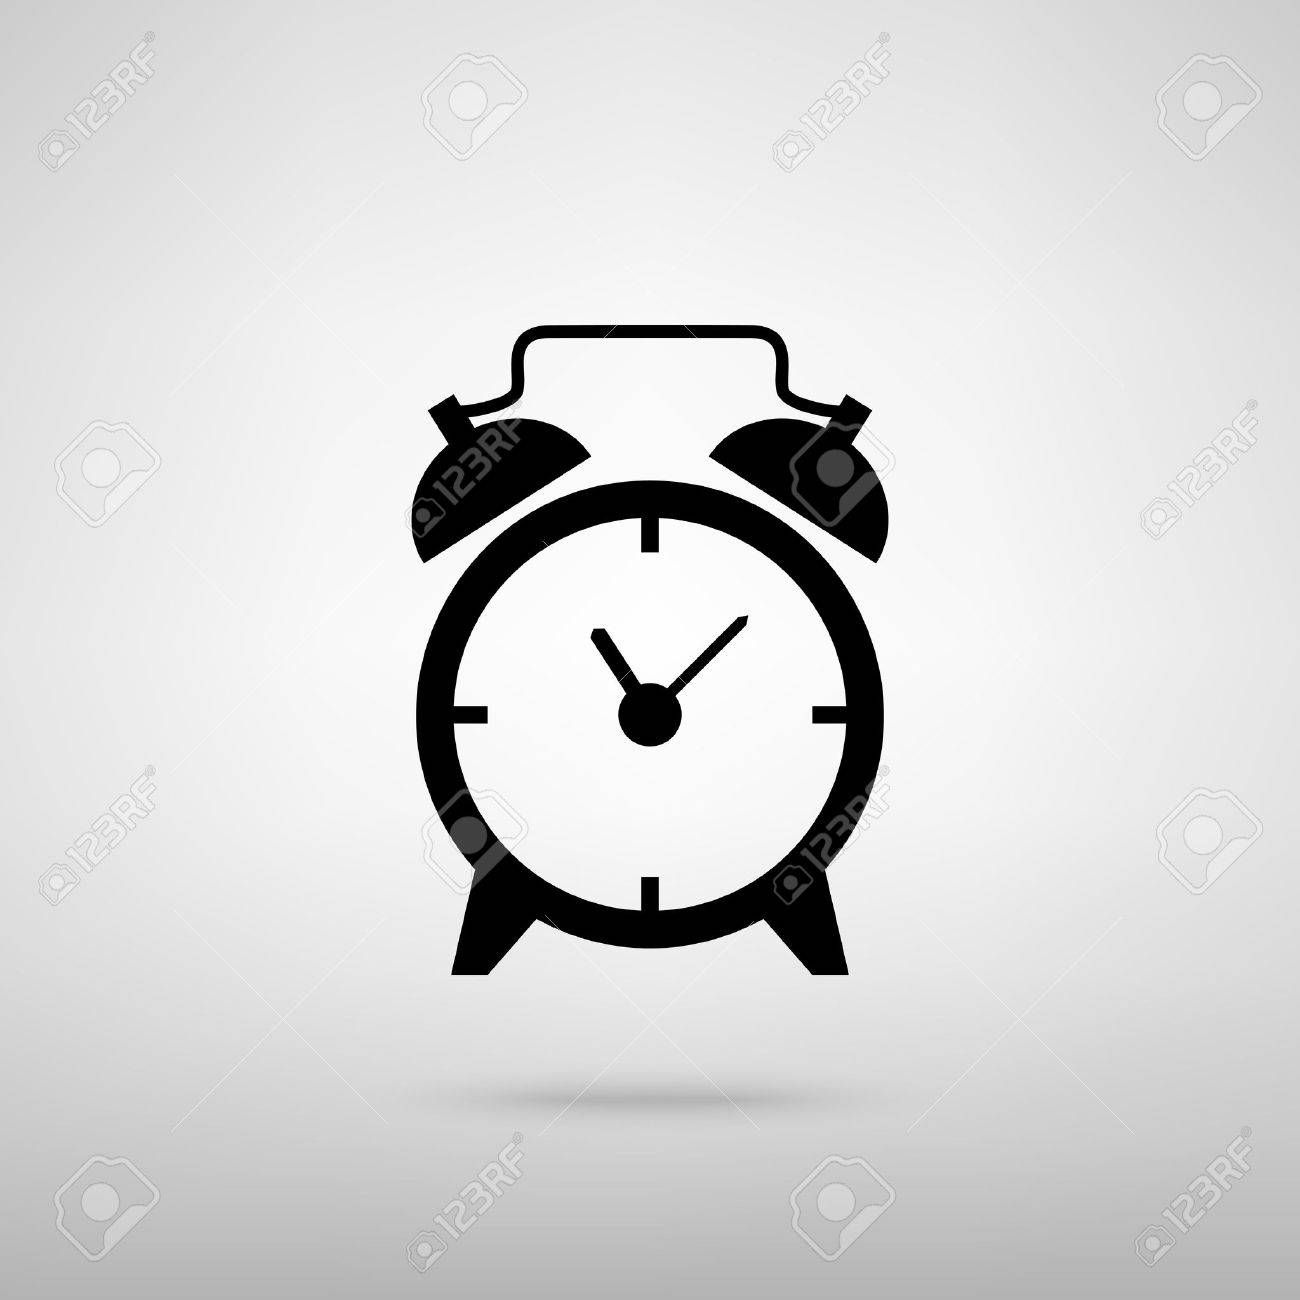 Alarm clock sign. Black with shadow on gray. - 56615333